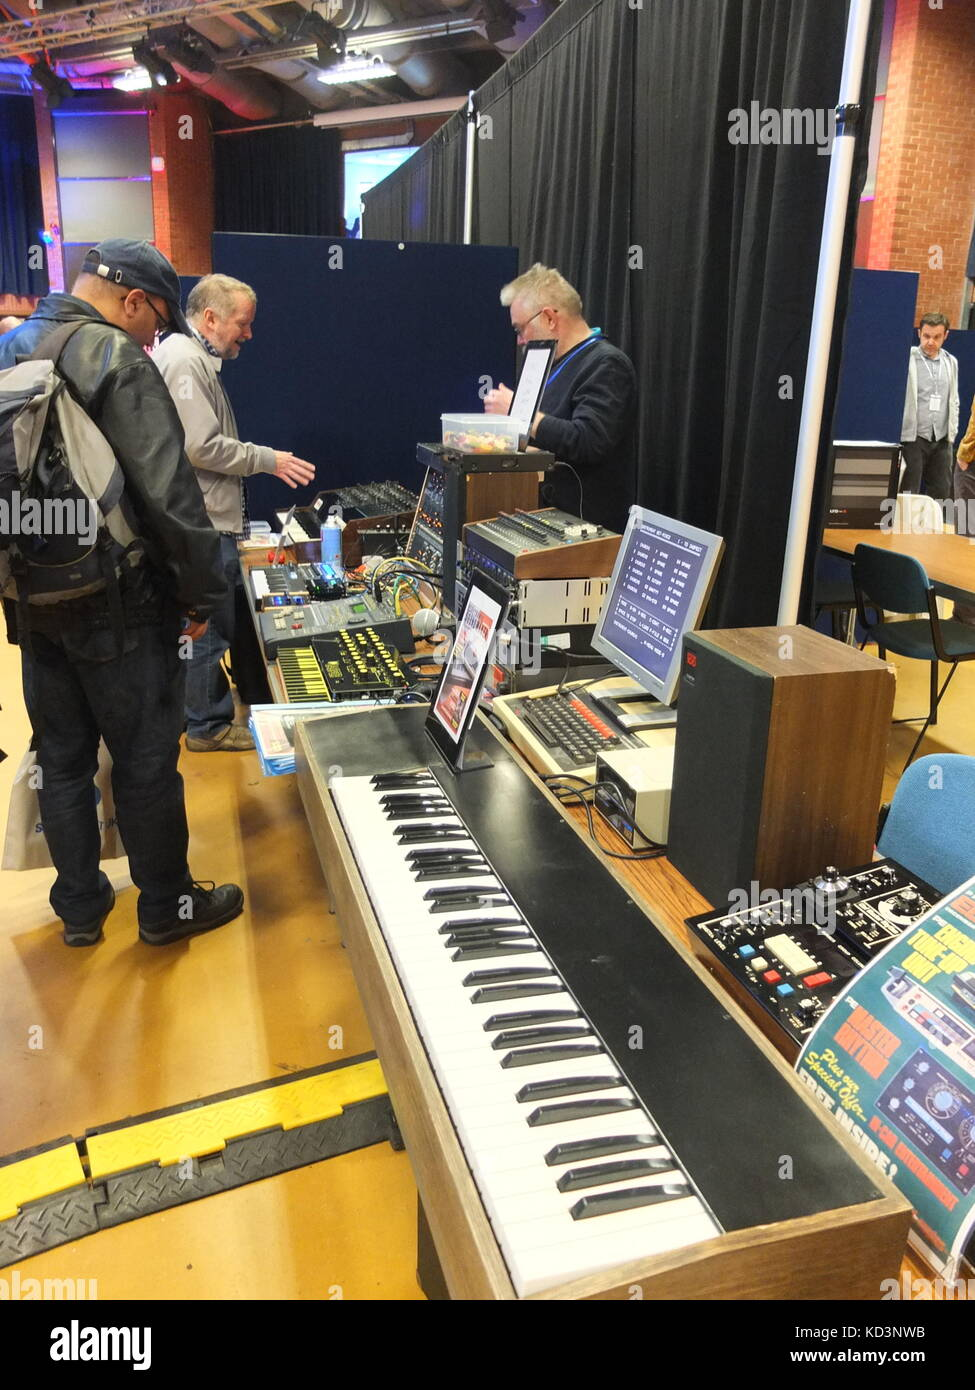 Electronic music technology on display at Synthfest UK, The Octagon Centre, University of Sheffield (part of Sensoria - Stock Image